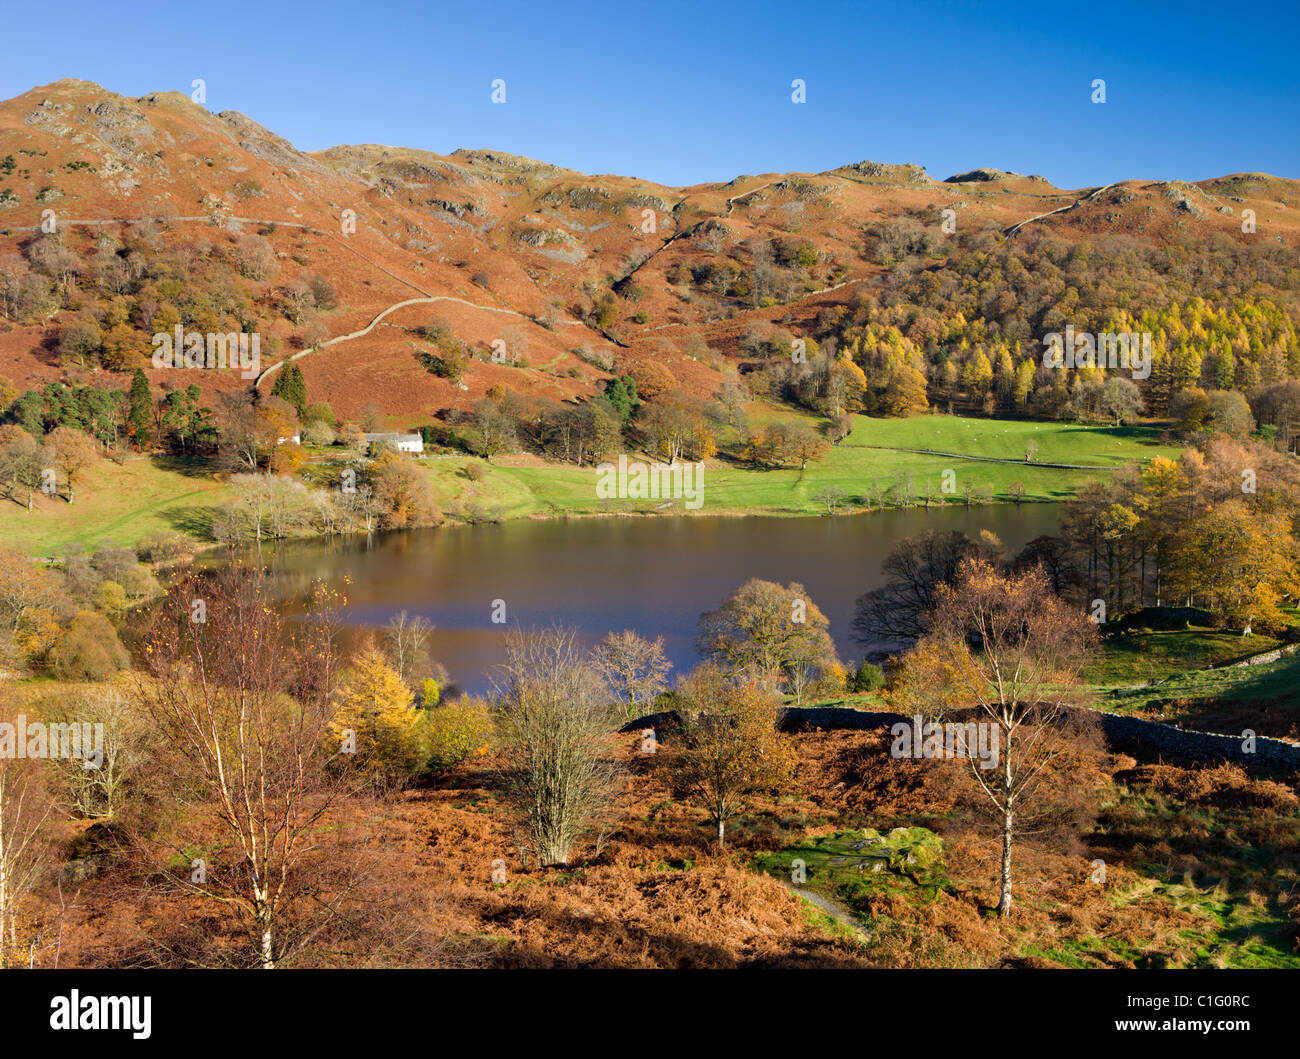 Loughrigg Tarn and Fell taken from Crag Head, Lake District National Park, Cumbria, England. Autumn (November) 2010. - Stock Image